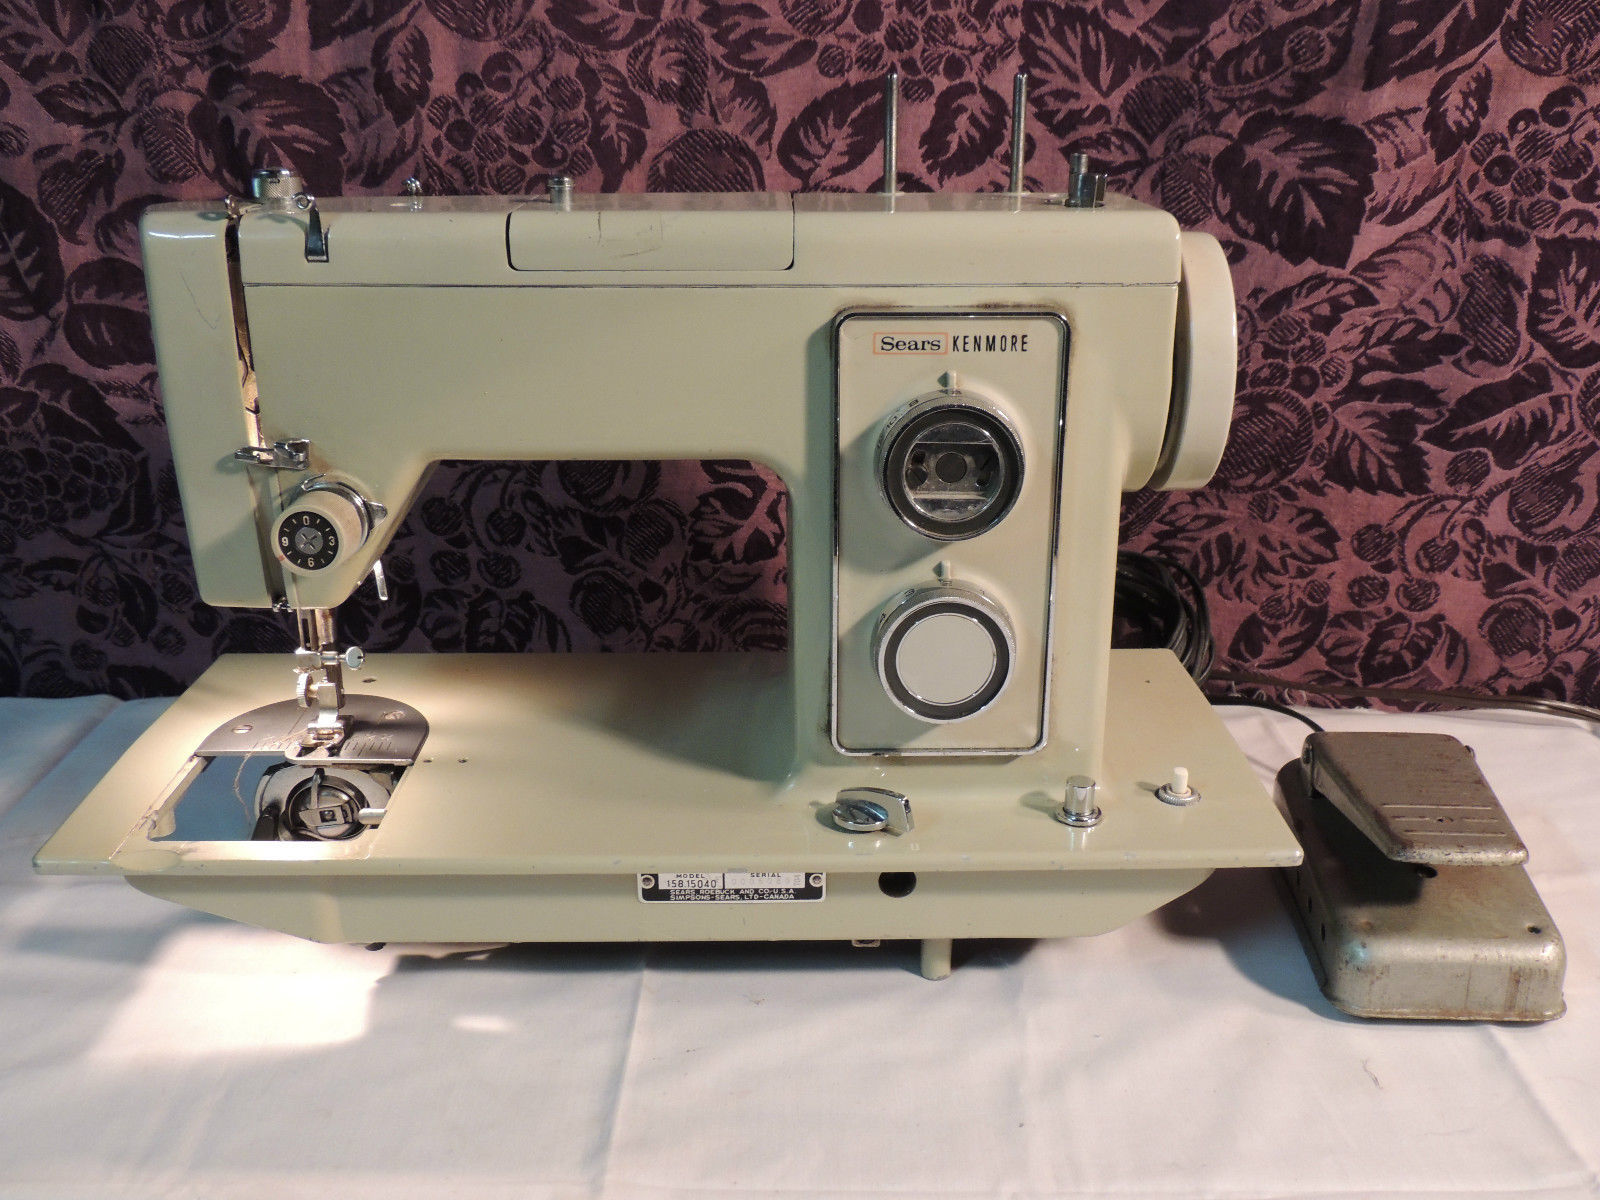 Vintage Sears Kenmore Sewing Machine, Model # 158.15040 Powers & Cycles